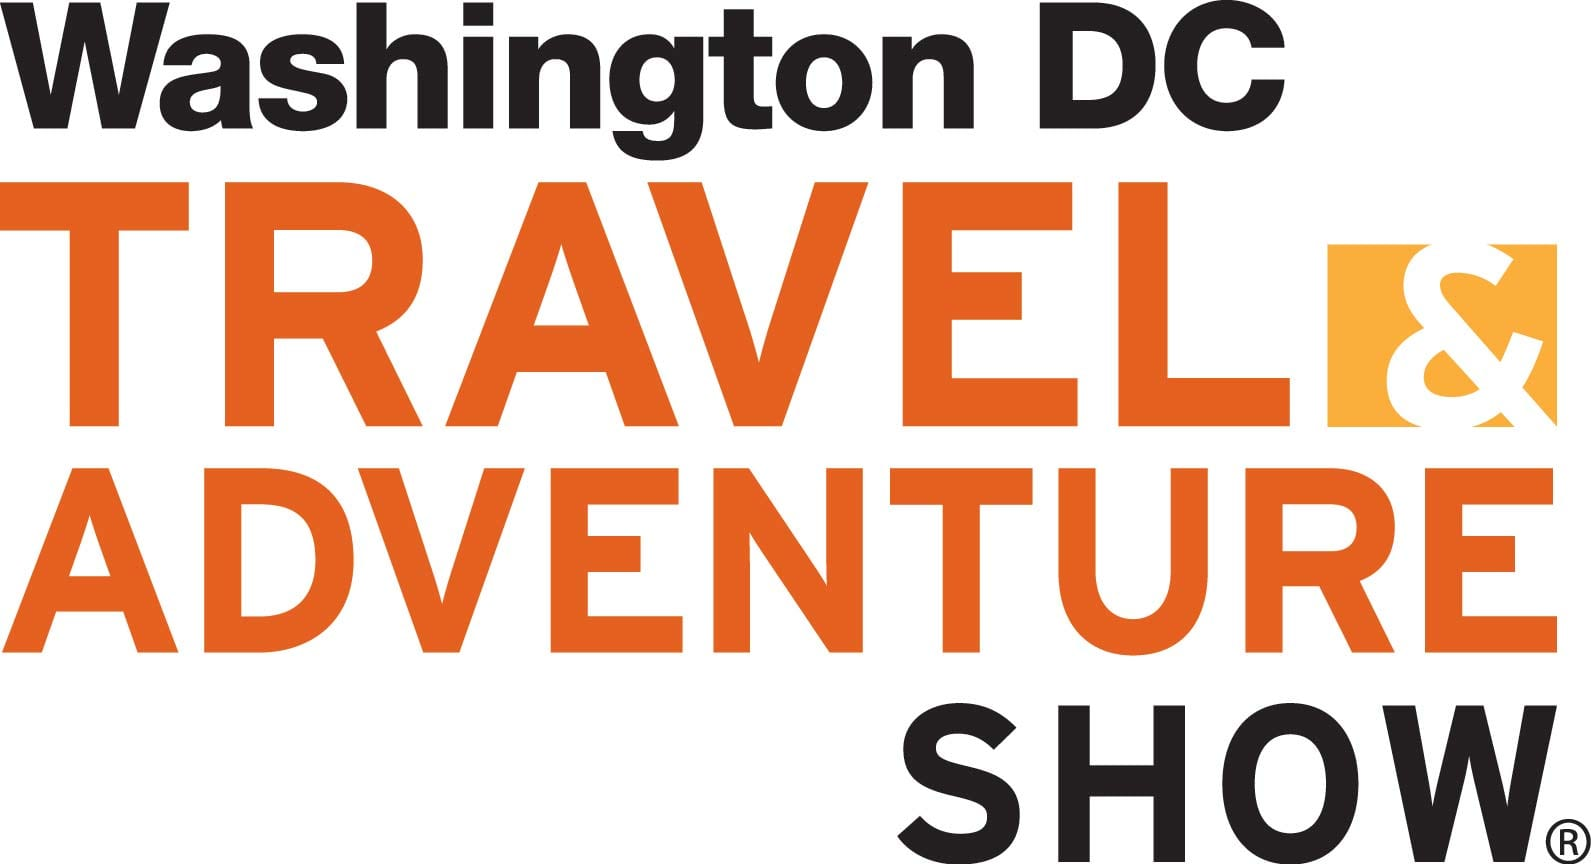 Washington DC Travel Shows - Travel Show